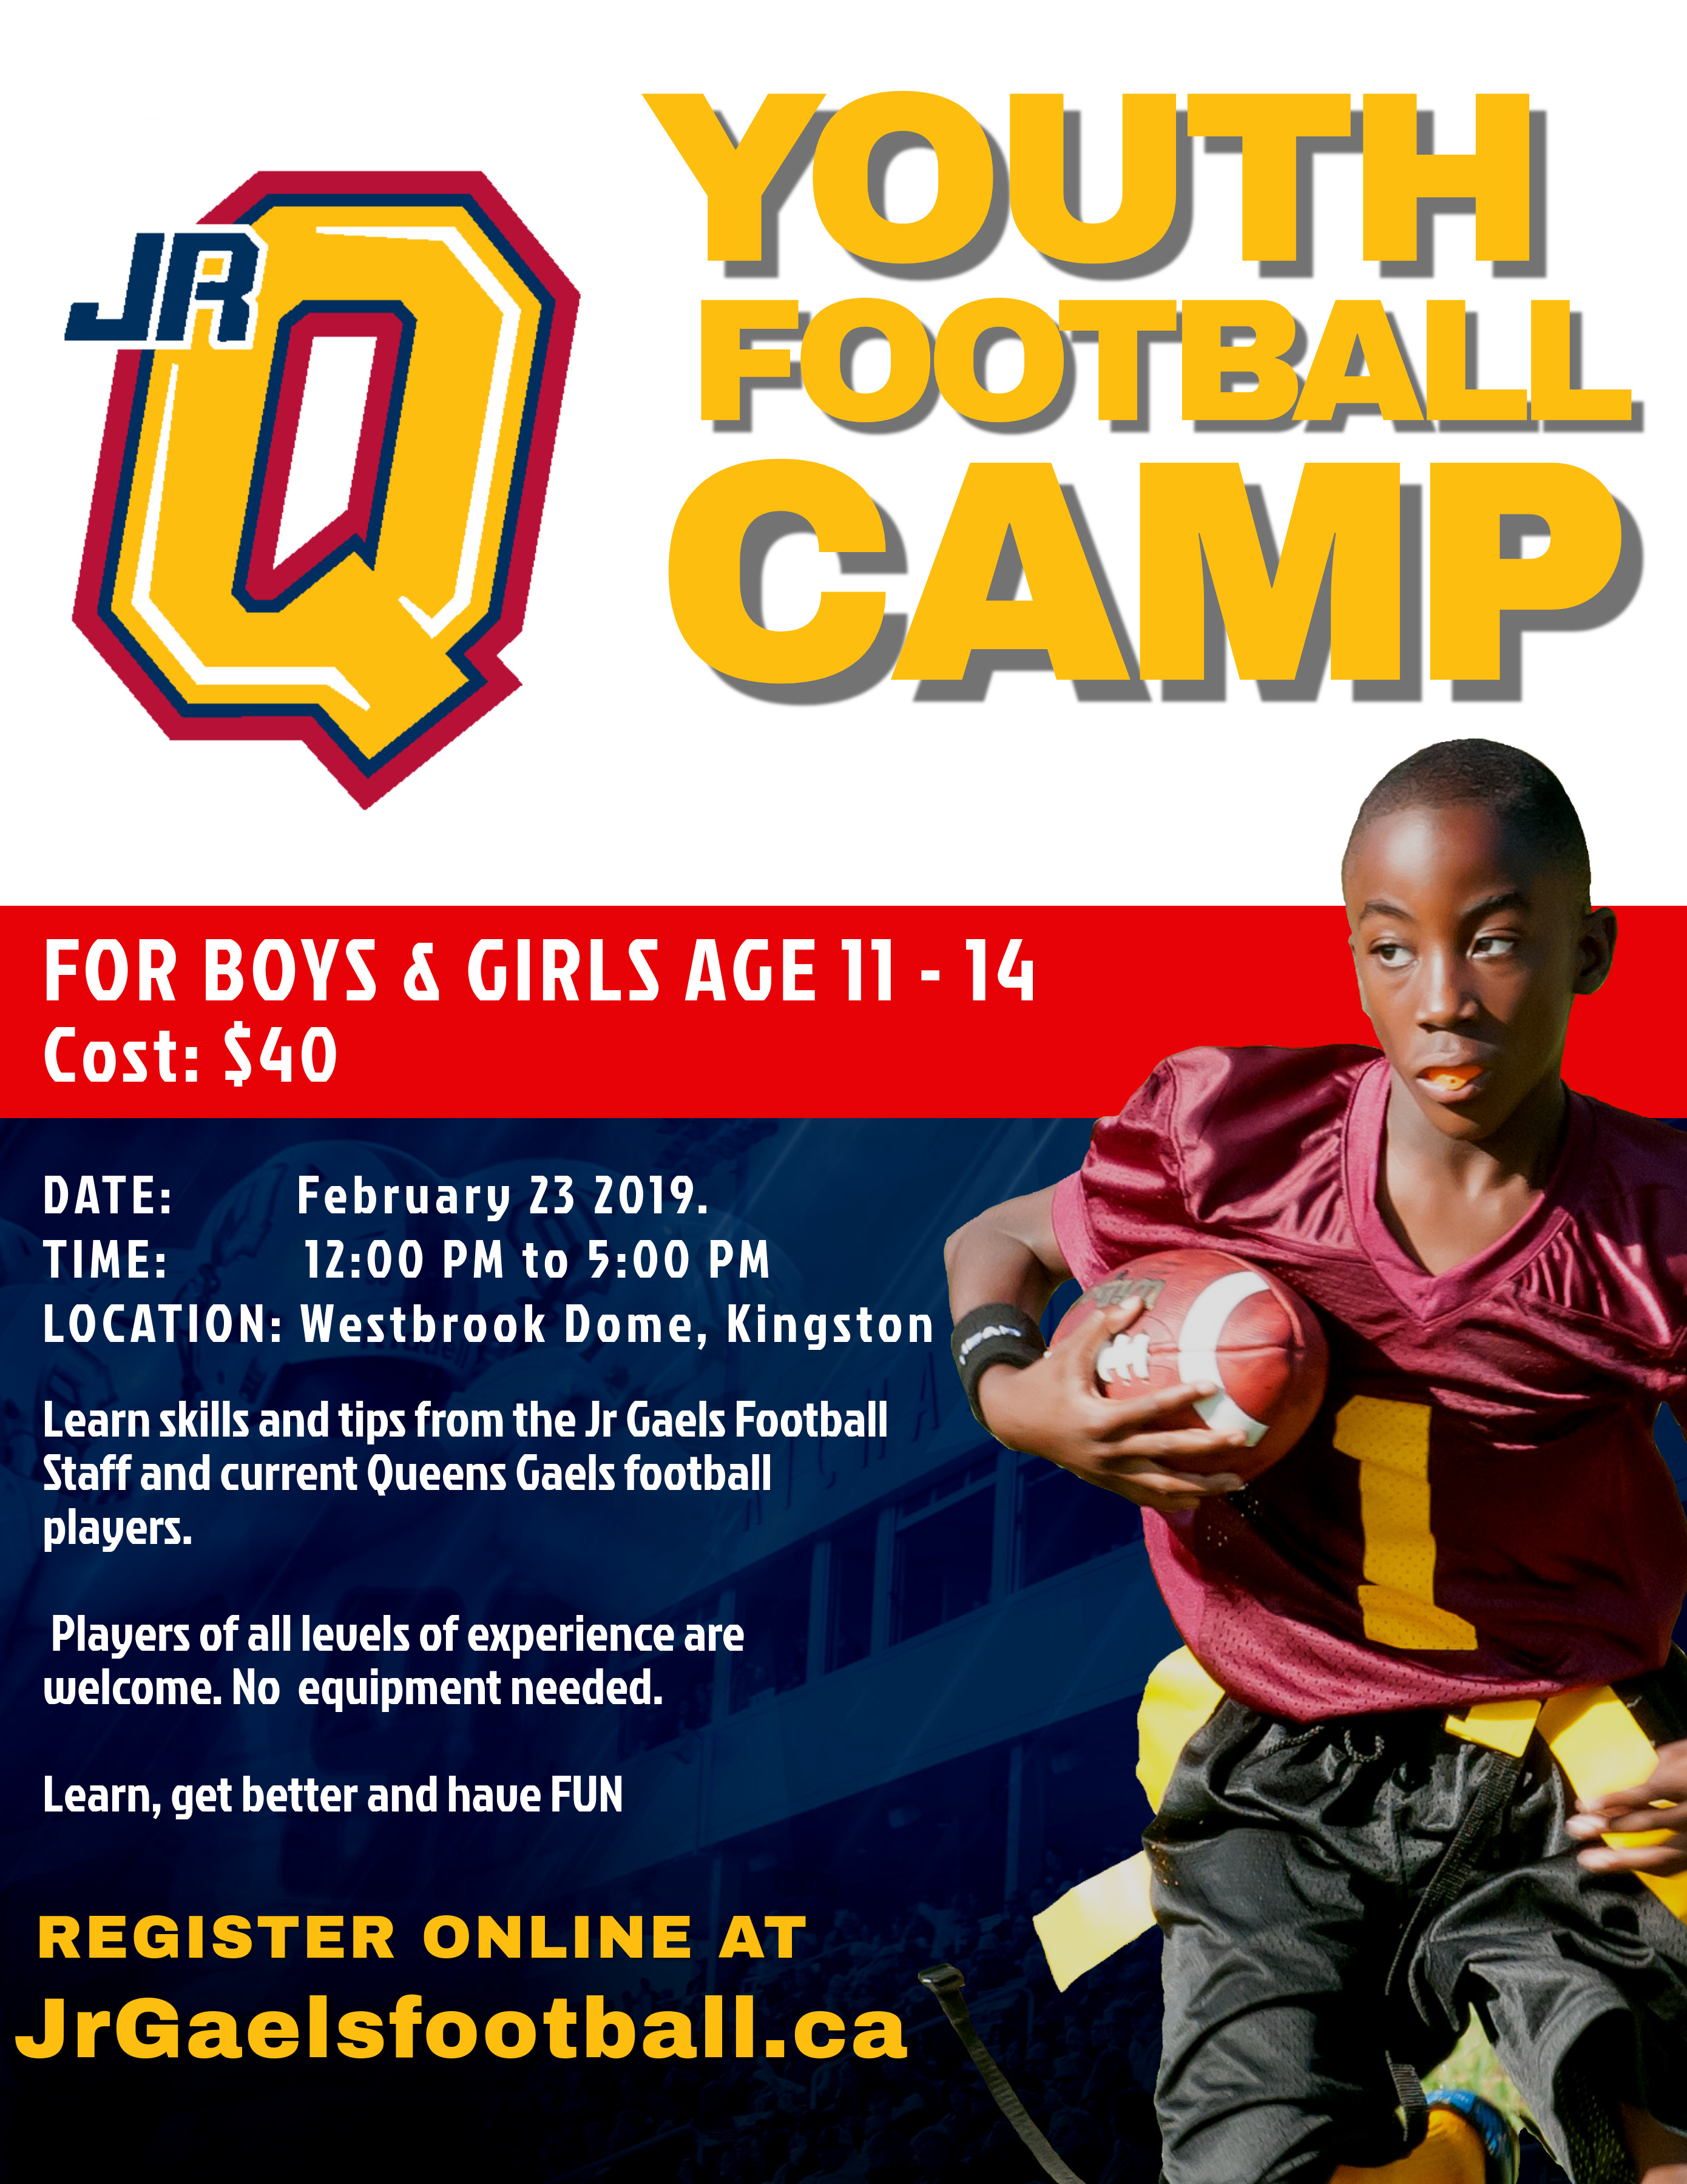 Youth football camp FLYER (1)